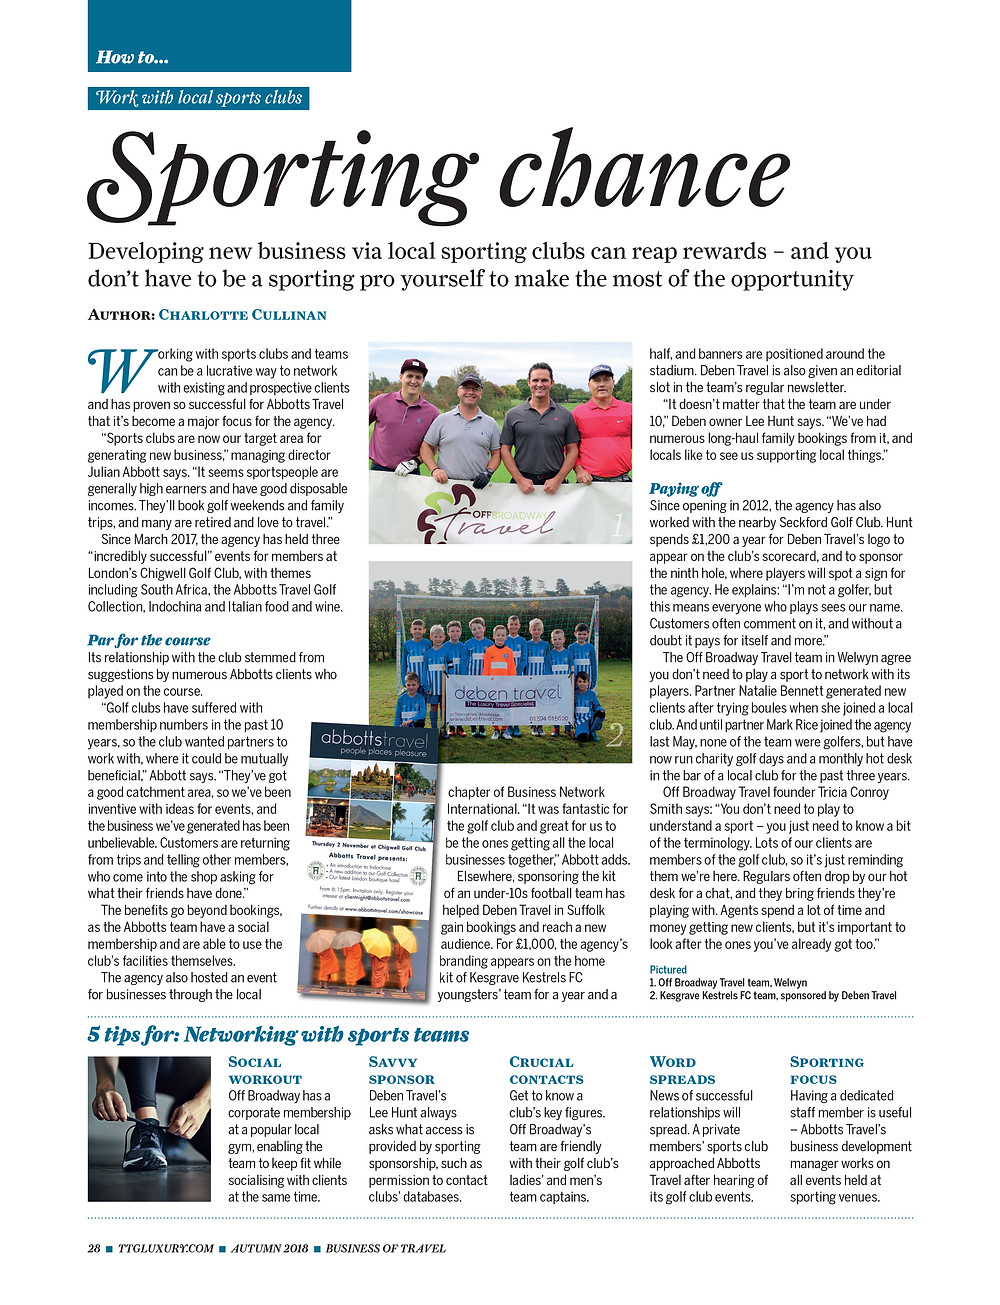 How to work with local sports clubs, TTG Luxury Magazine